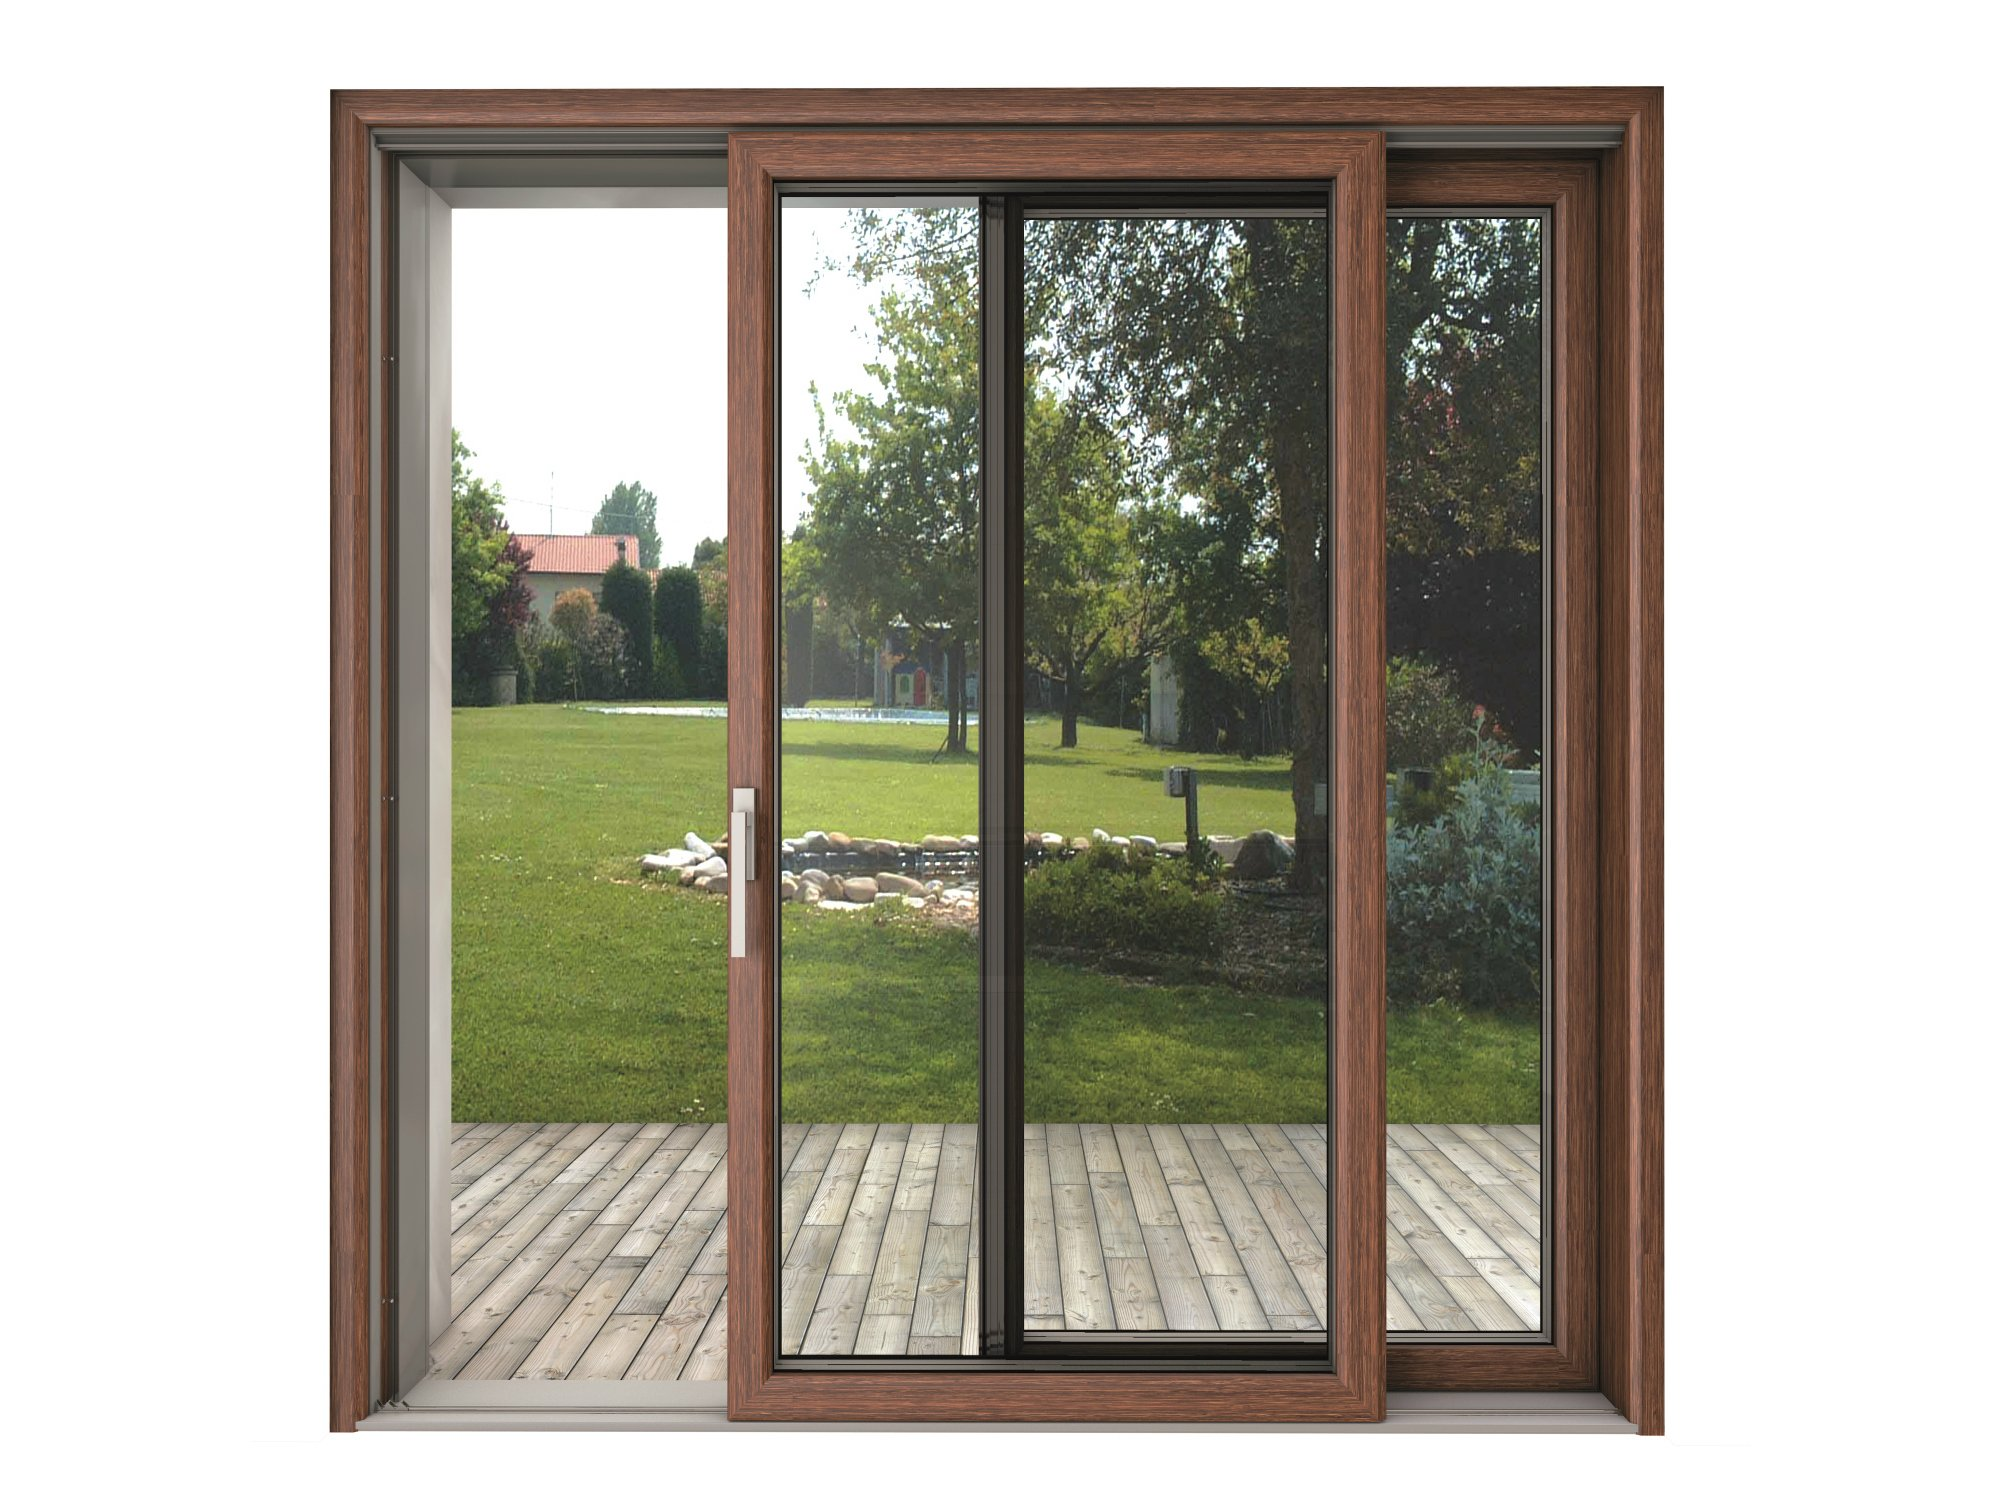 Blindoklima Wood Sliding Window By Sabatino Liberato